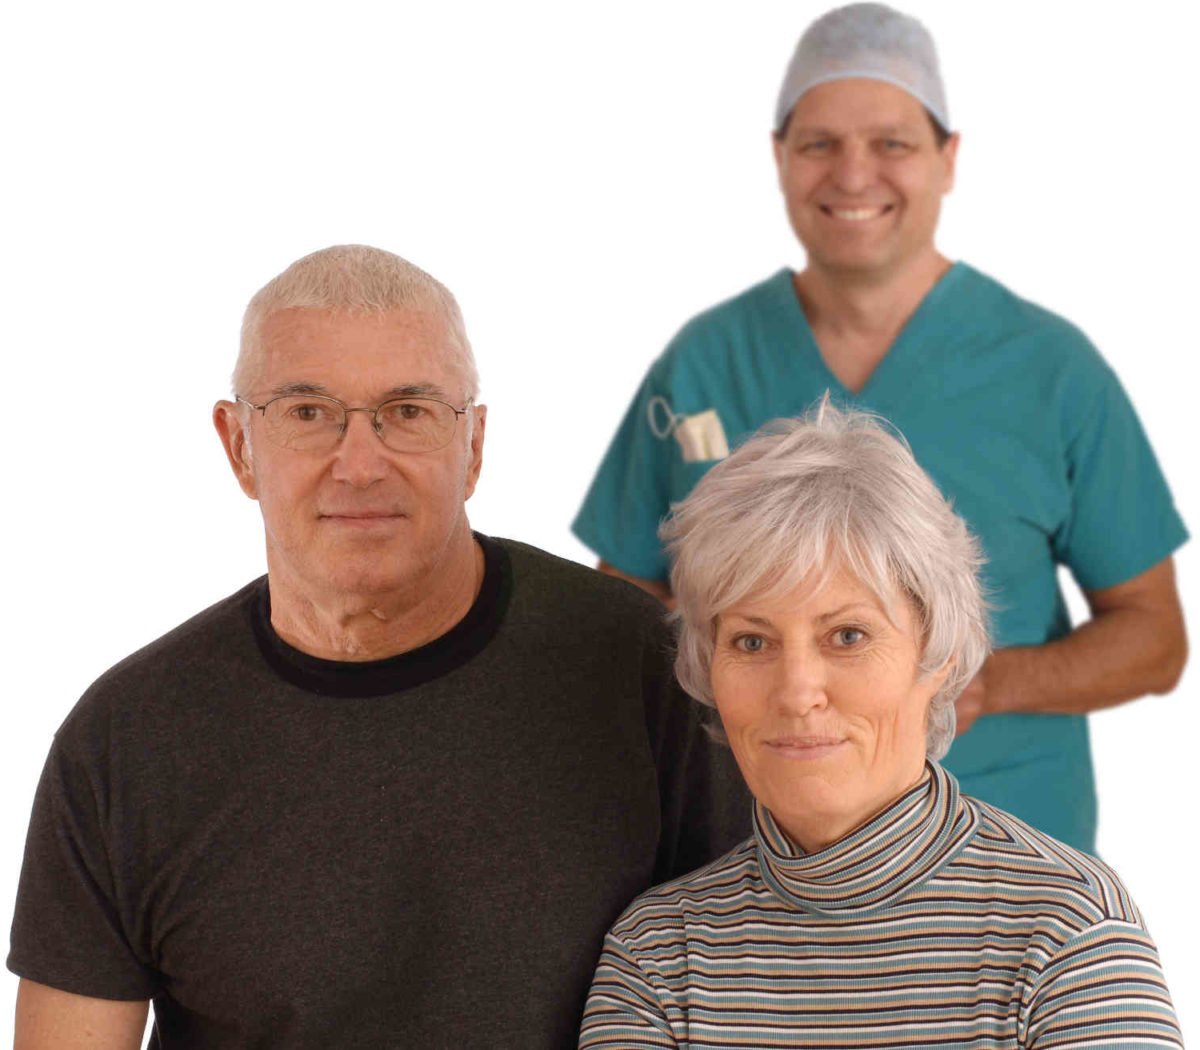 bigstock-Seniors-Surgeon-5988926-e1489431418457-1200x1050.jpg